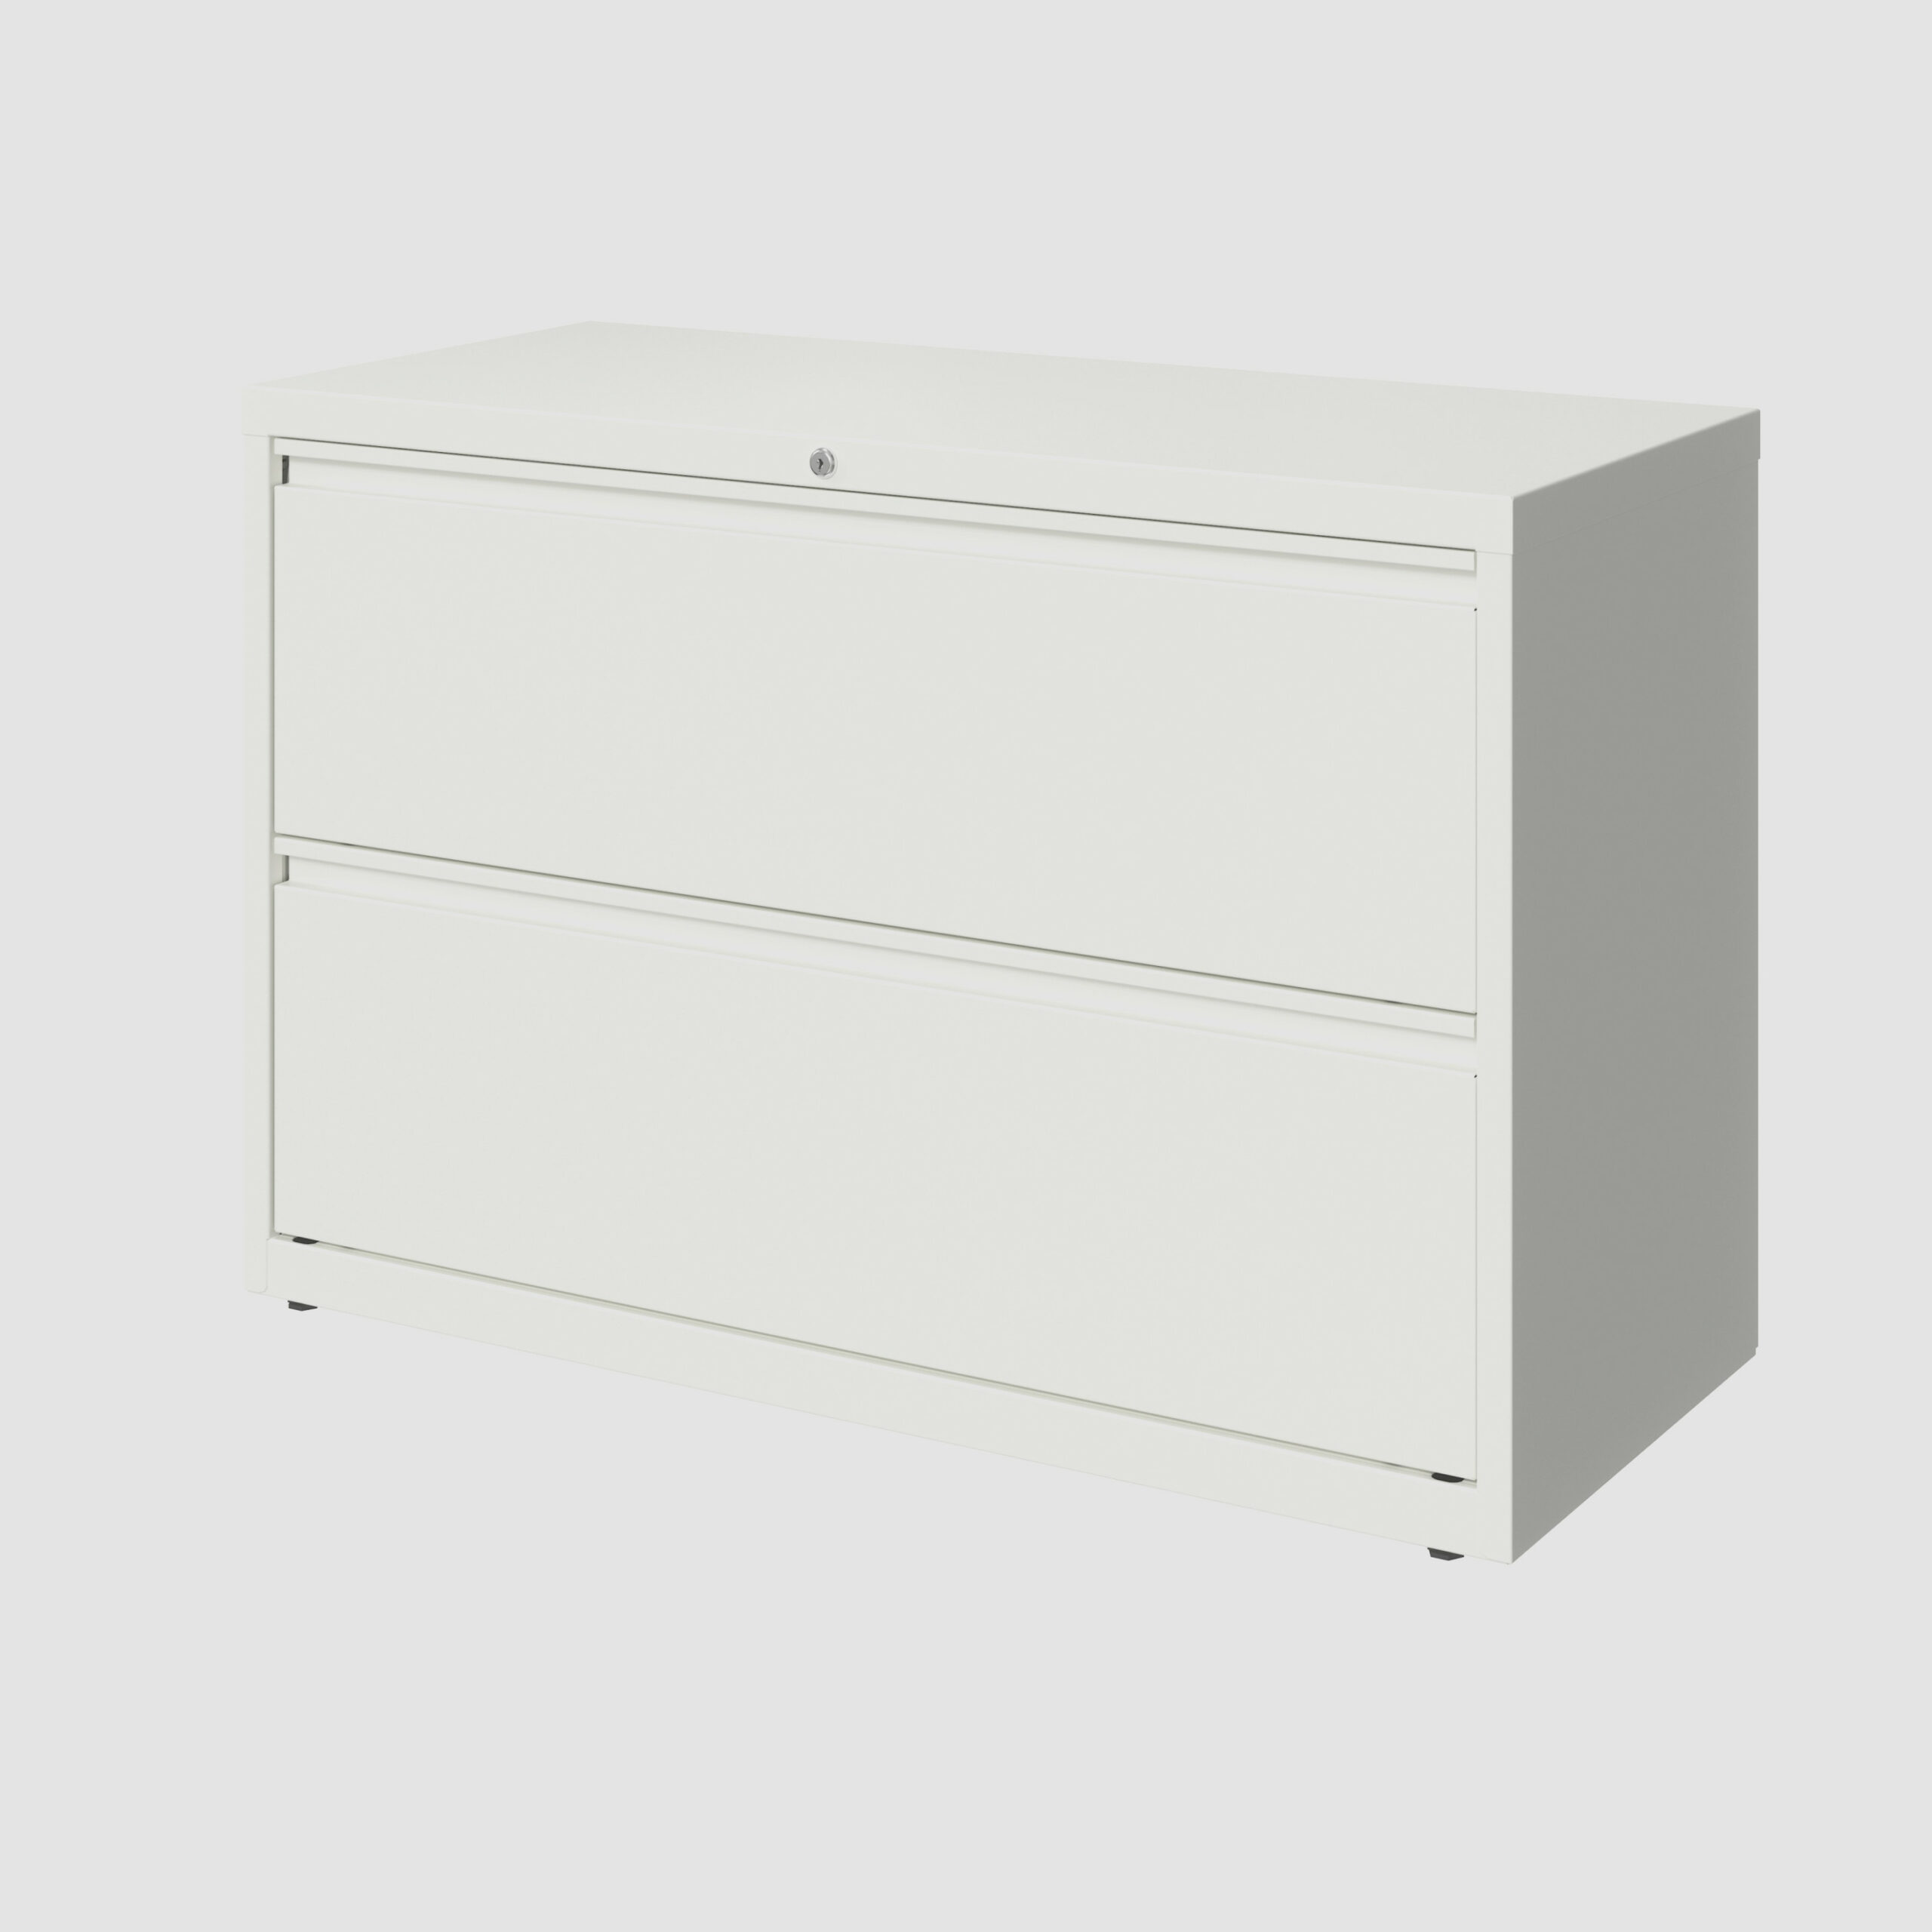 1 Lateral File Cabinet 1 Drawer